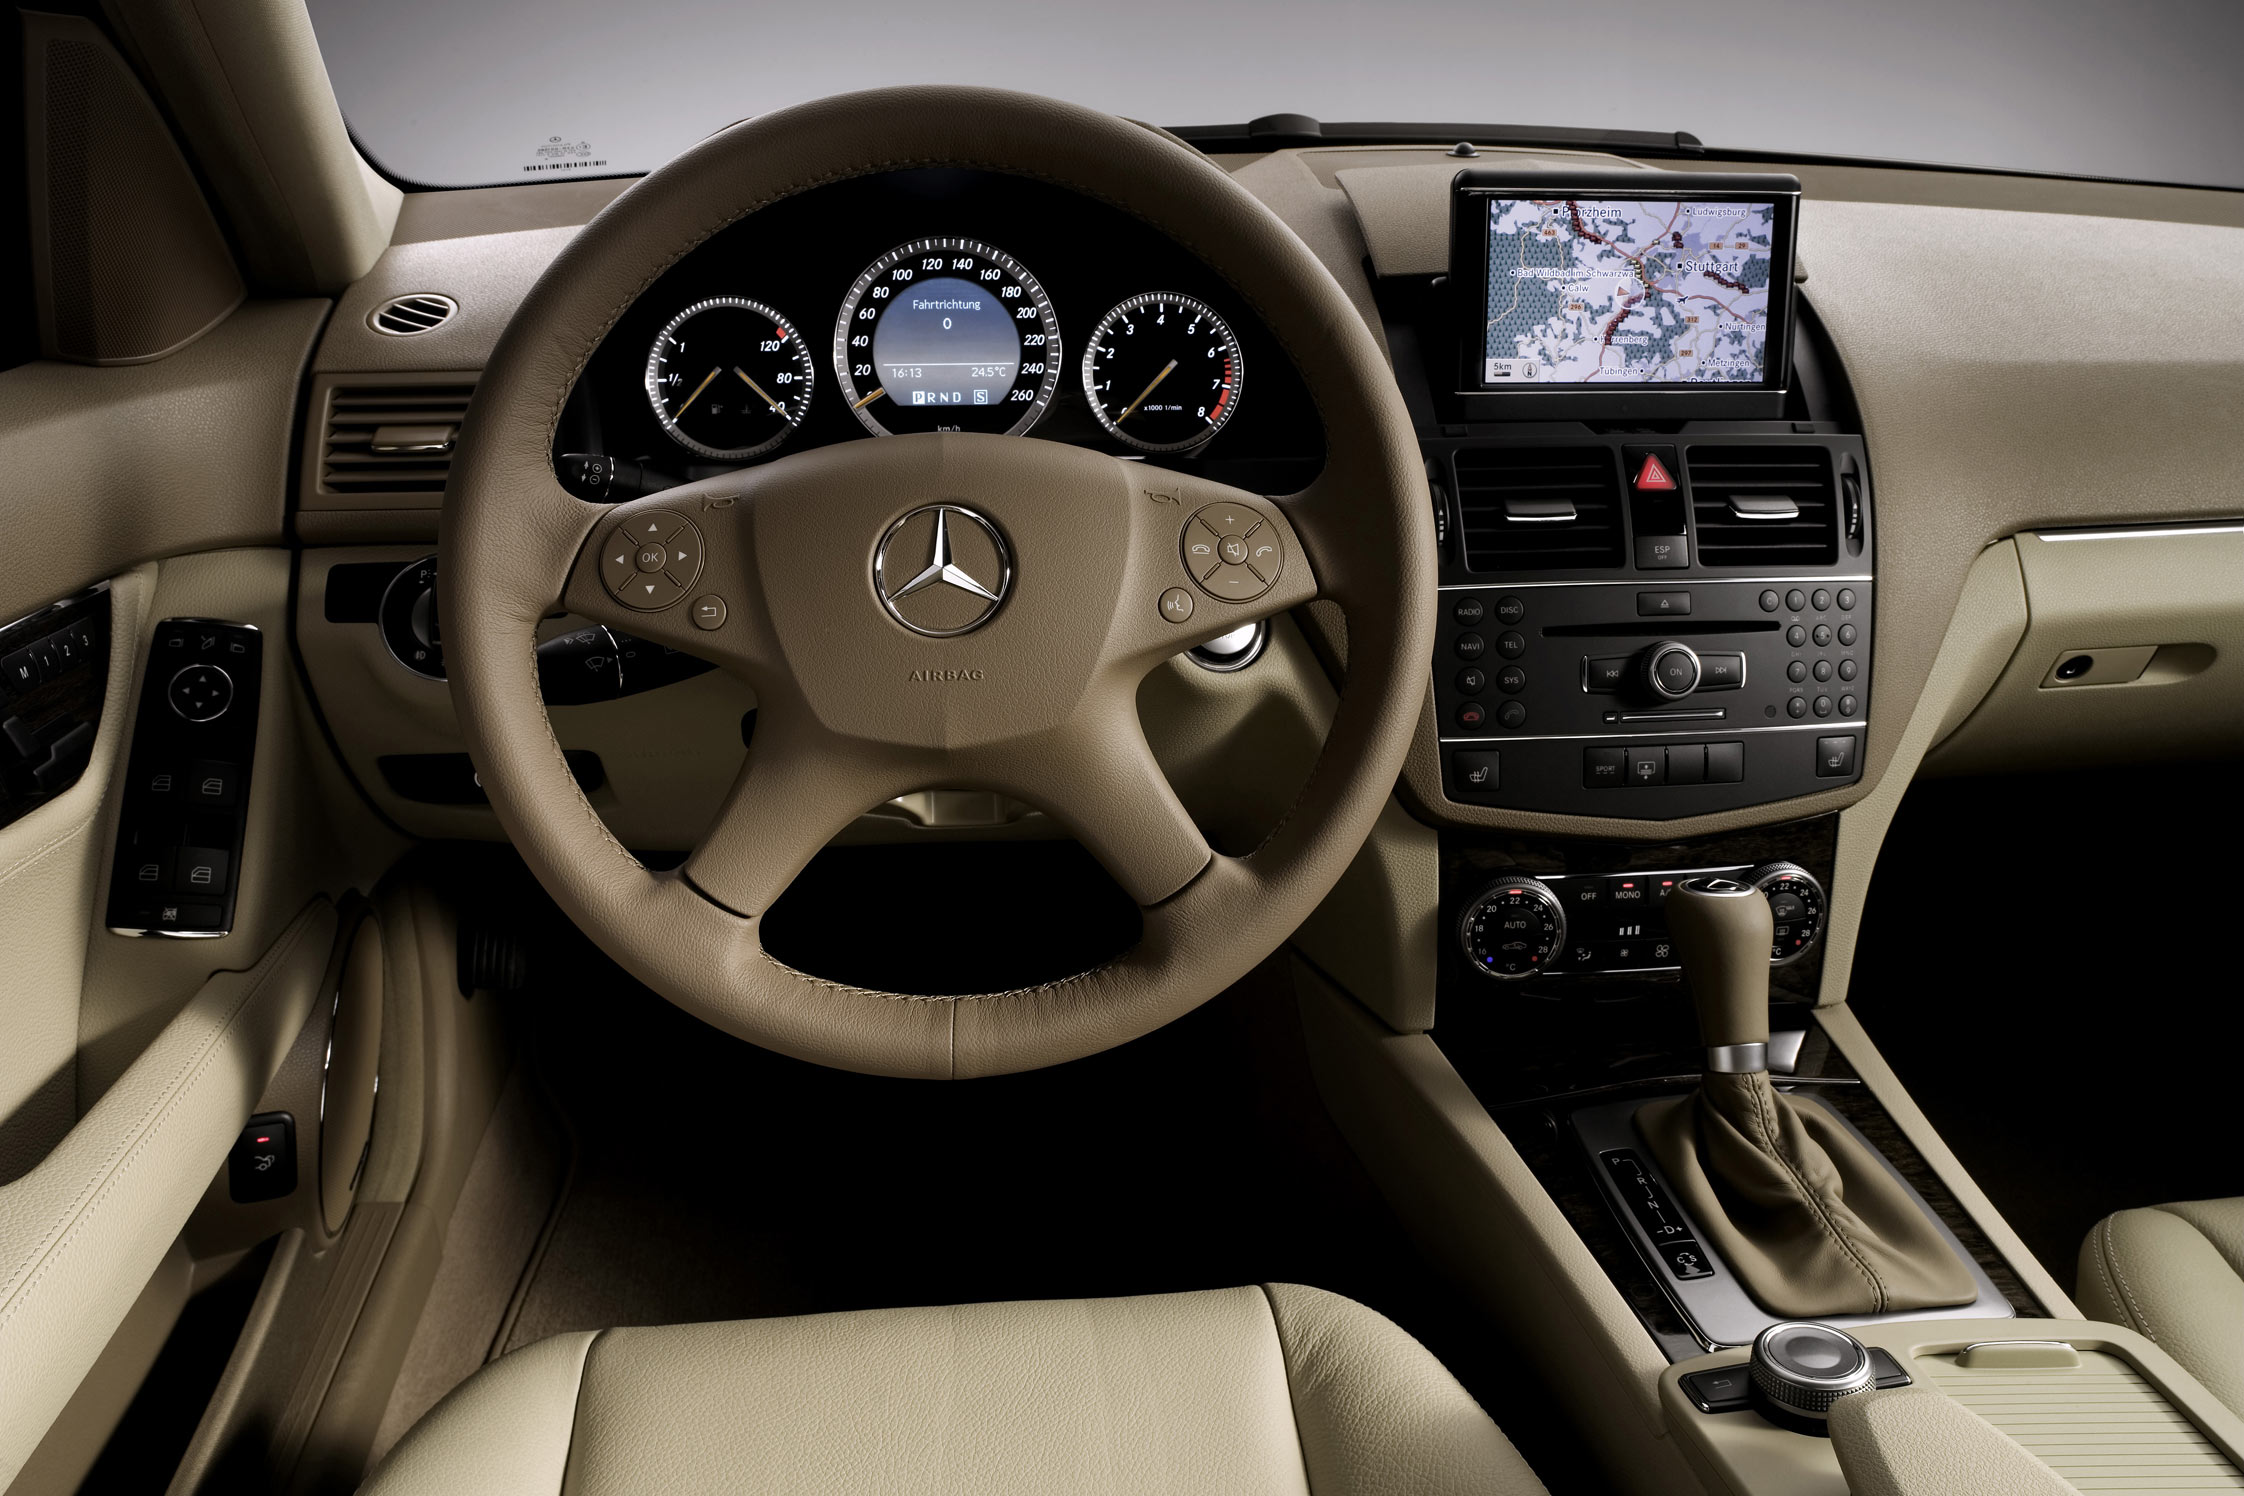 essai mercedes c 200 cdi break motorlegend. Black Bedroom Furniture Sets. Home Design Ideas